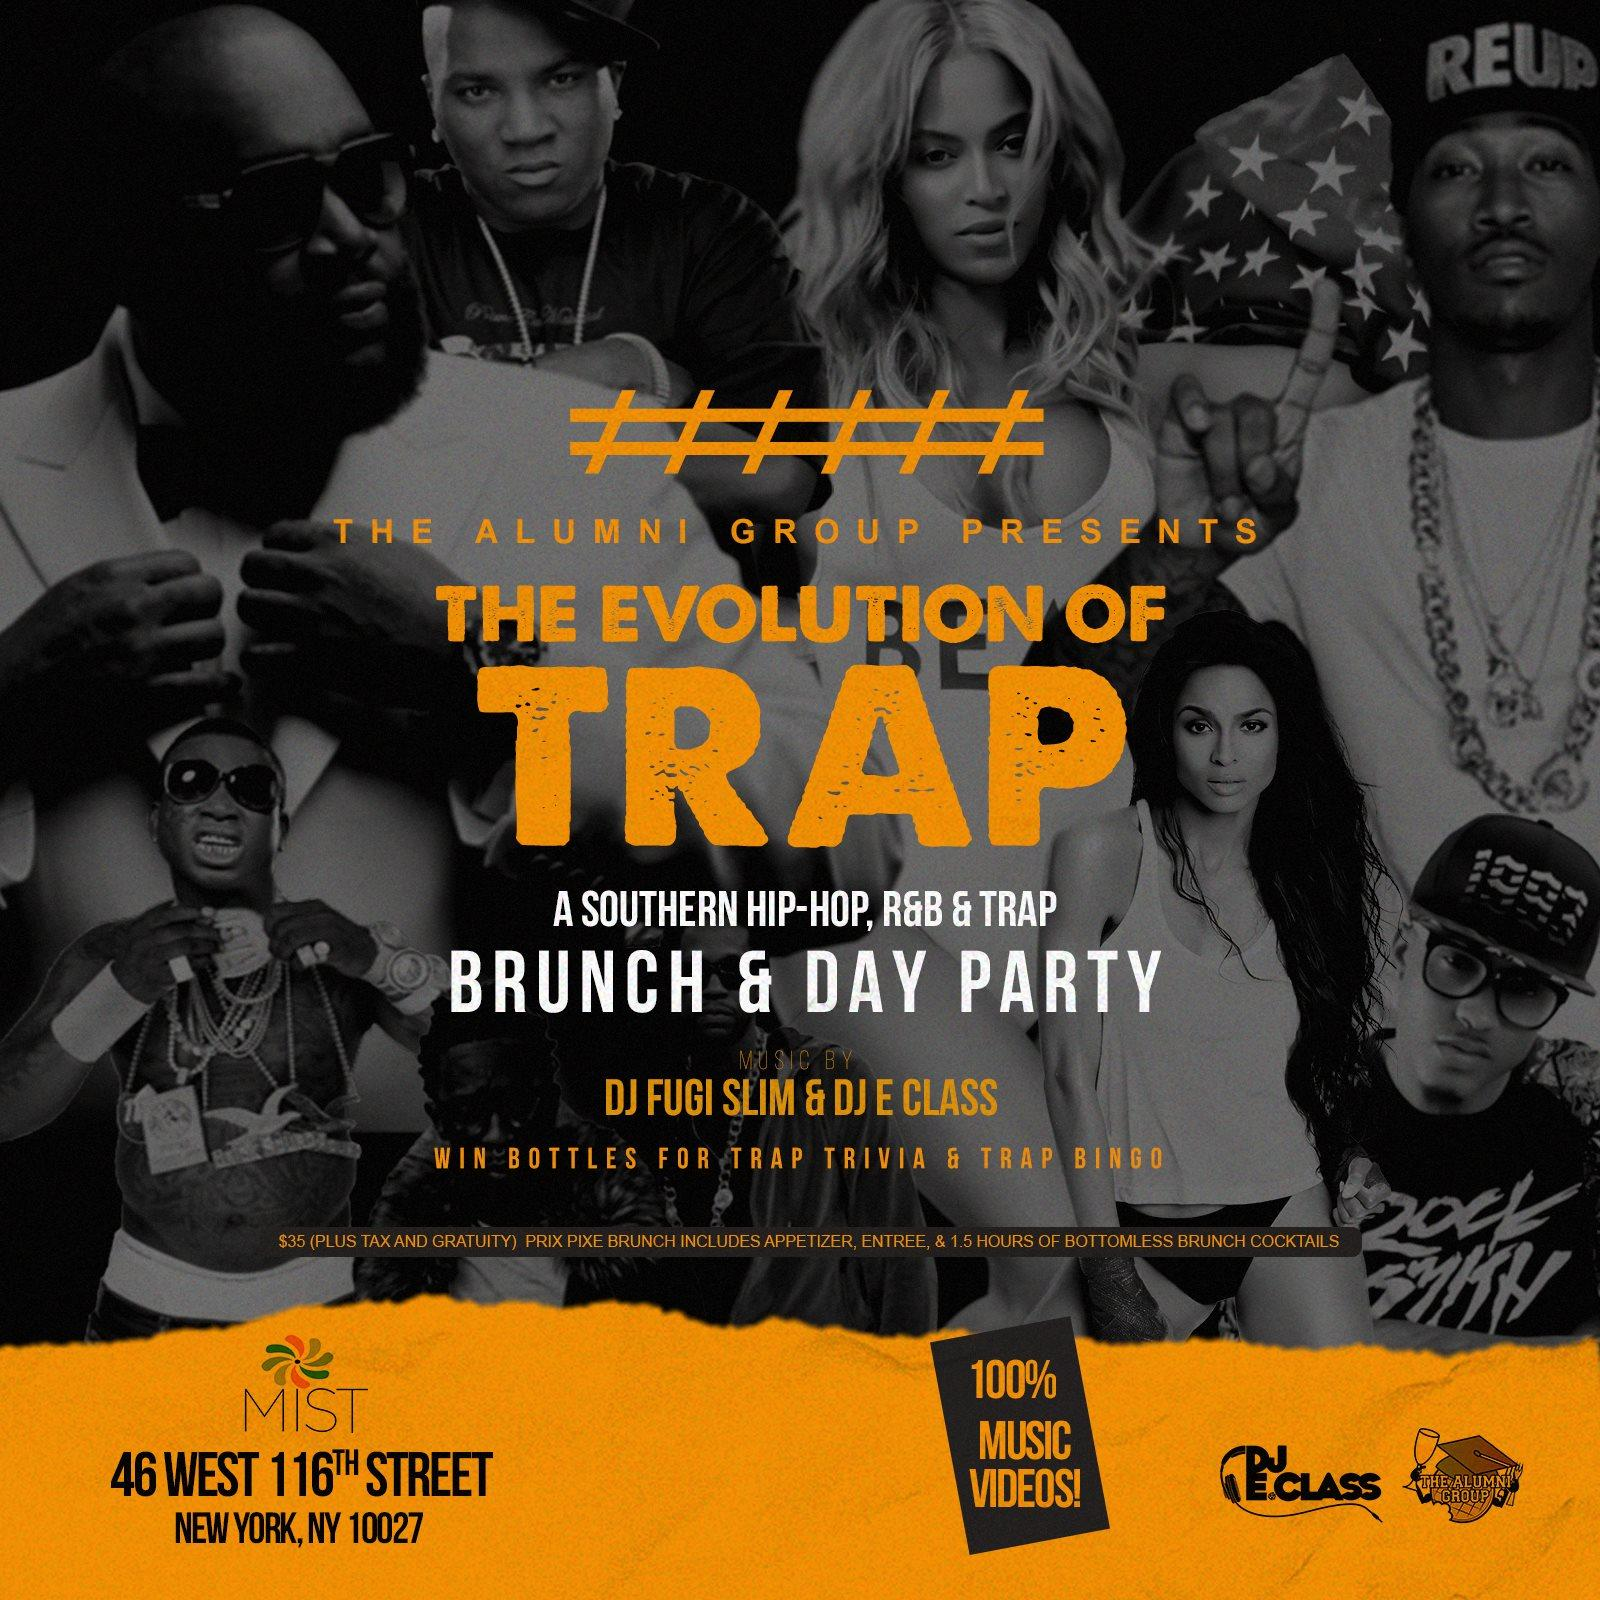 The Evolution of Trap: A Southern Hip-Hop, Trap, & R&B Brunch & Day Party